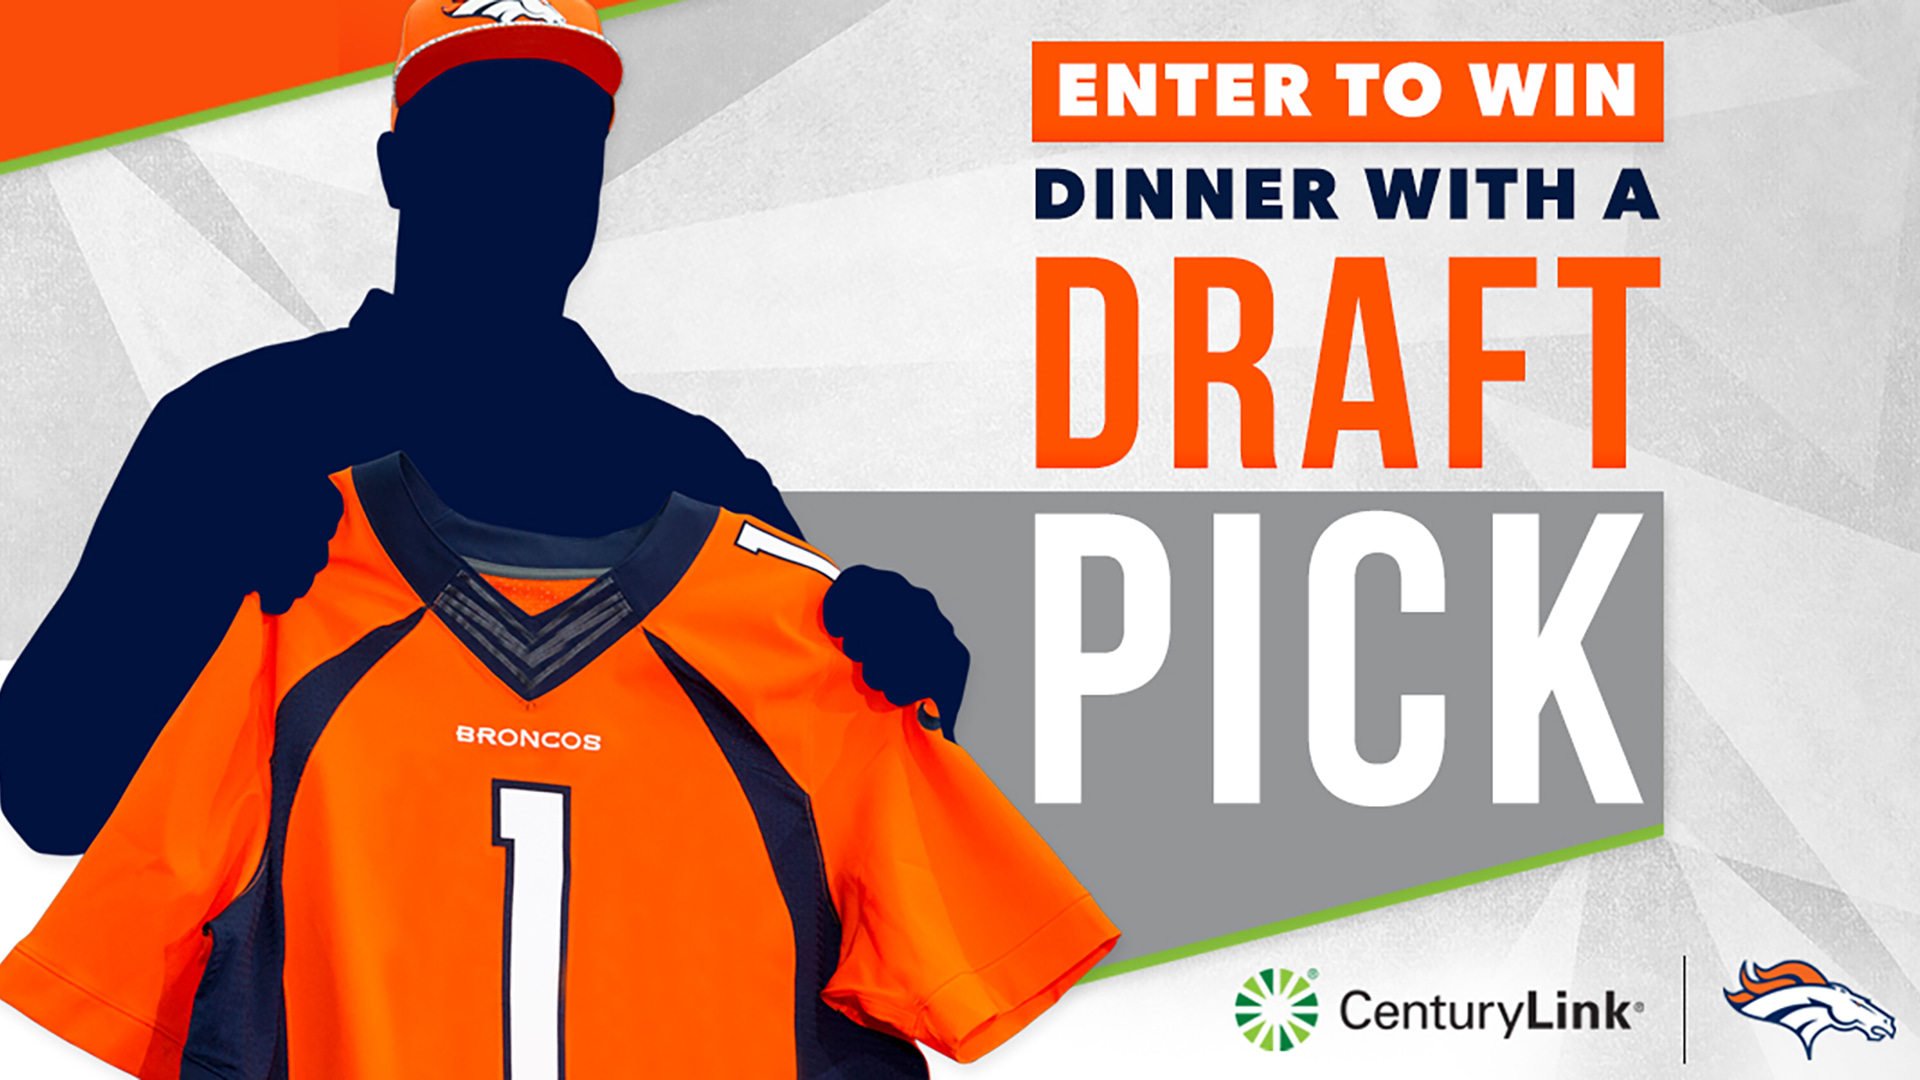 ENTER TO WIN DINNER WITH A DRAFT PICK!